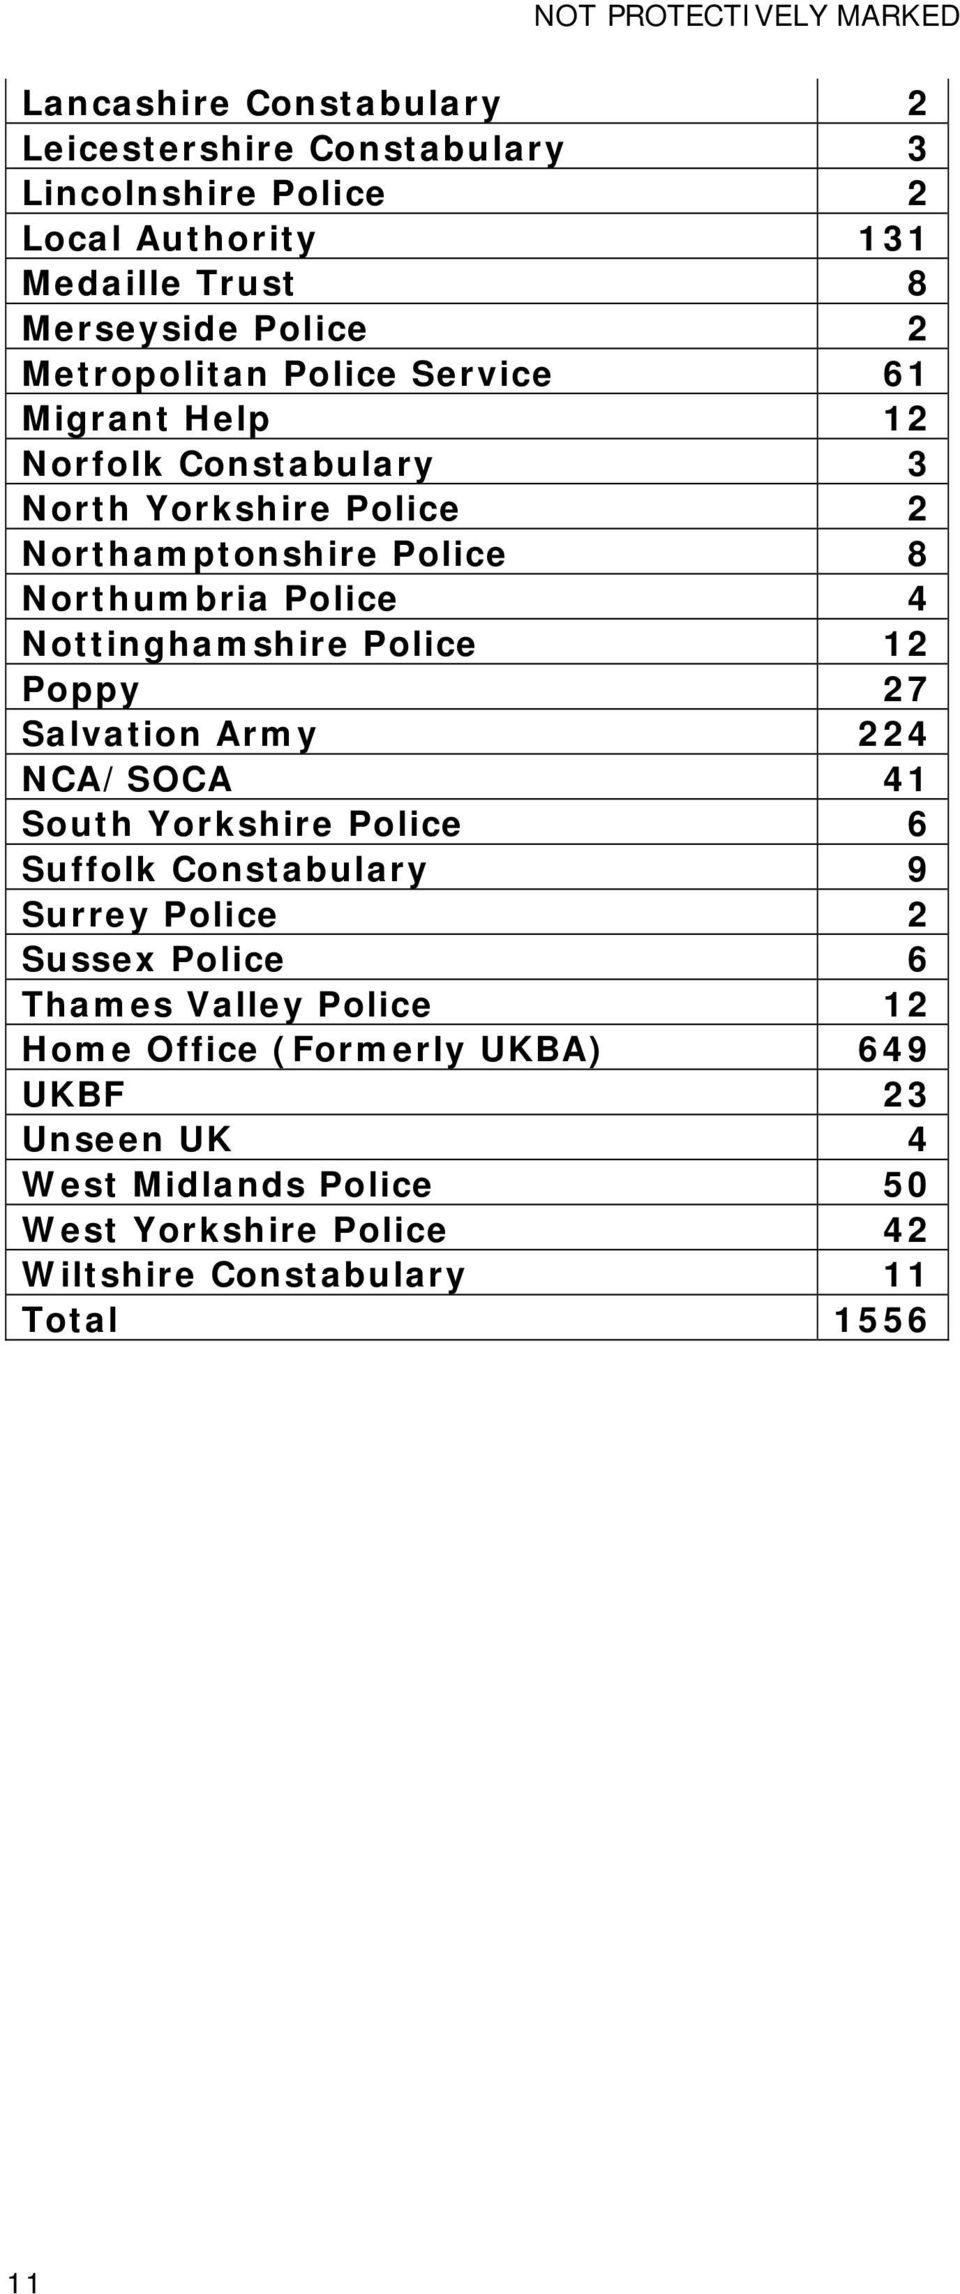 Nottinghamshire Police 12 Poppy 27 Salvation Army 224 NCA/SOCA 41 South Yorkshire Police 6 Suffolk Constabulary 9 Surrey Police 2 Sussex Police 6